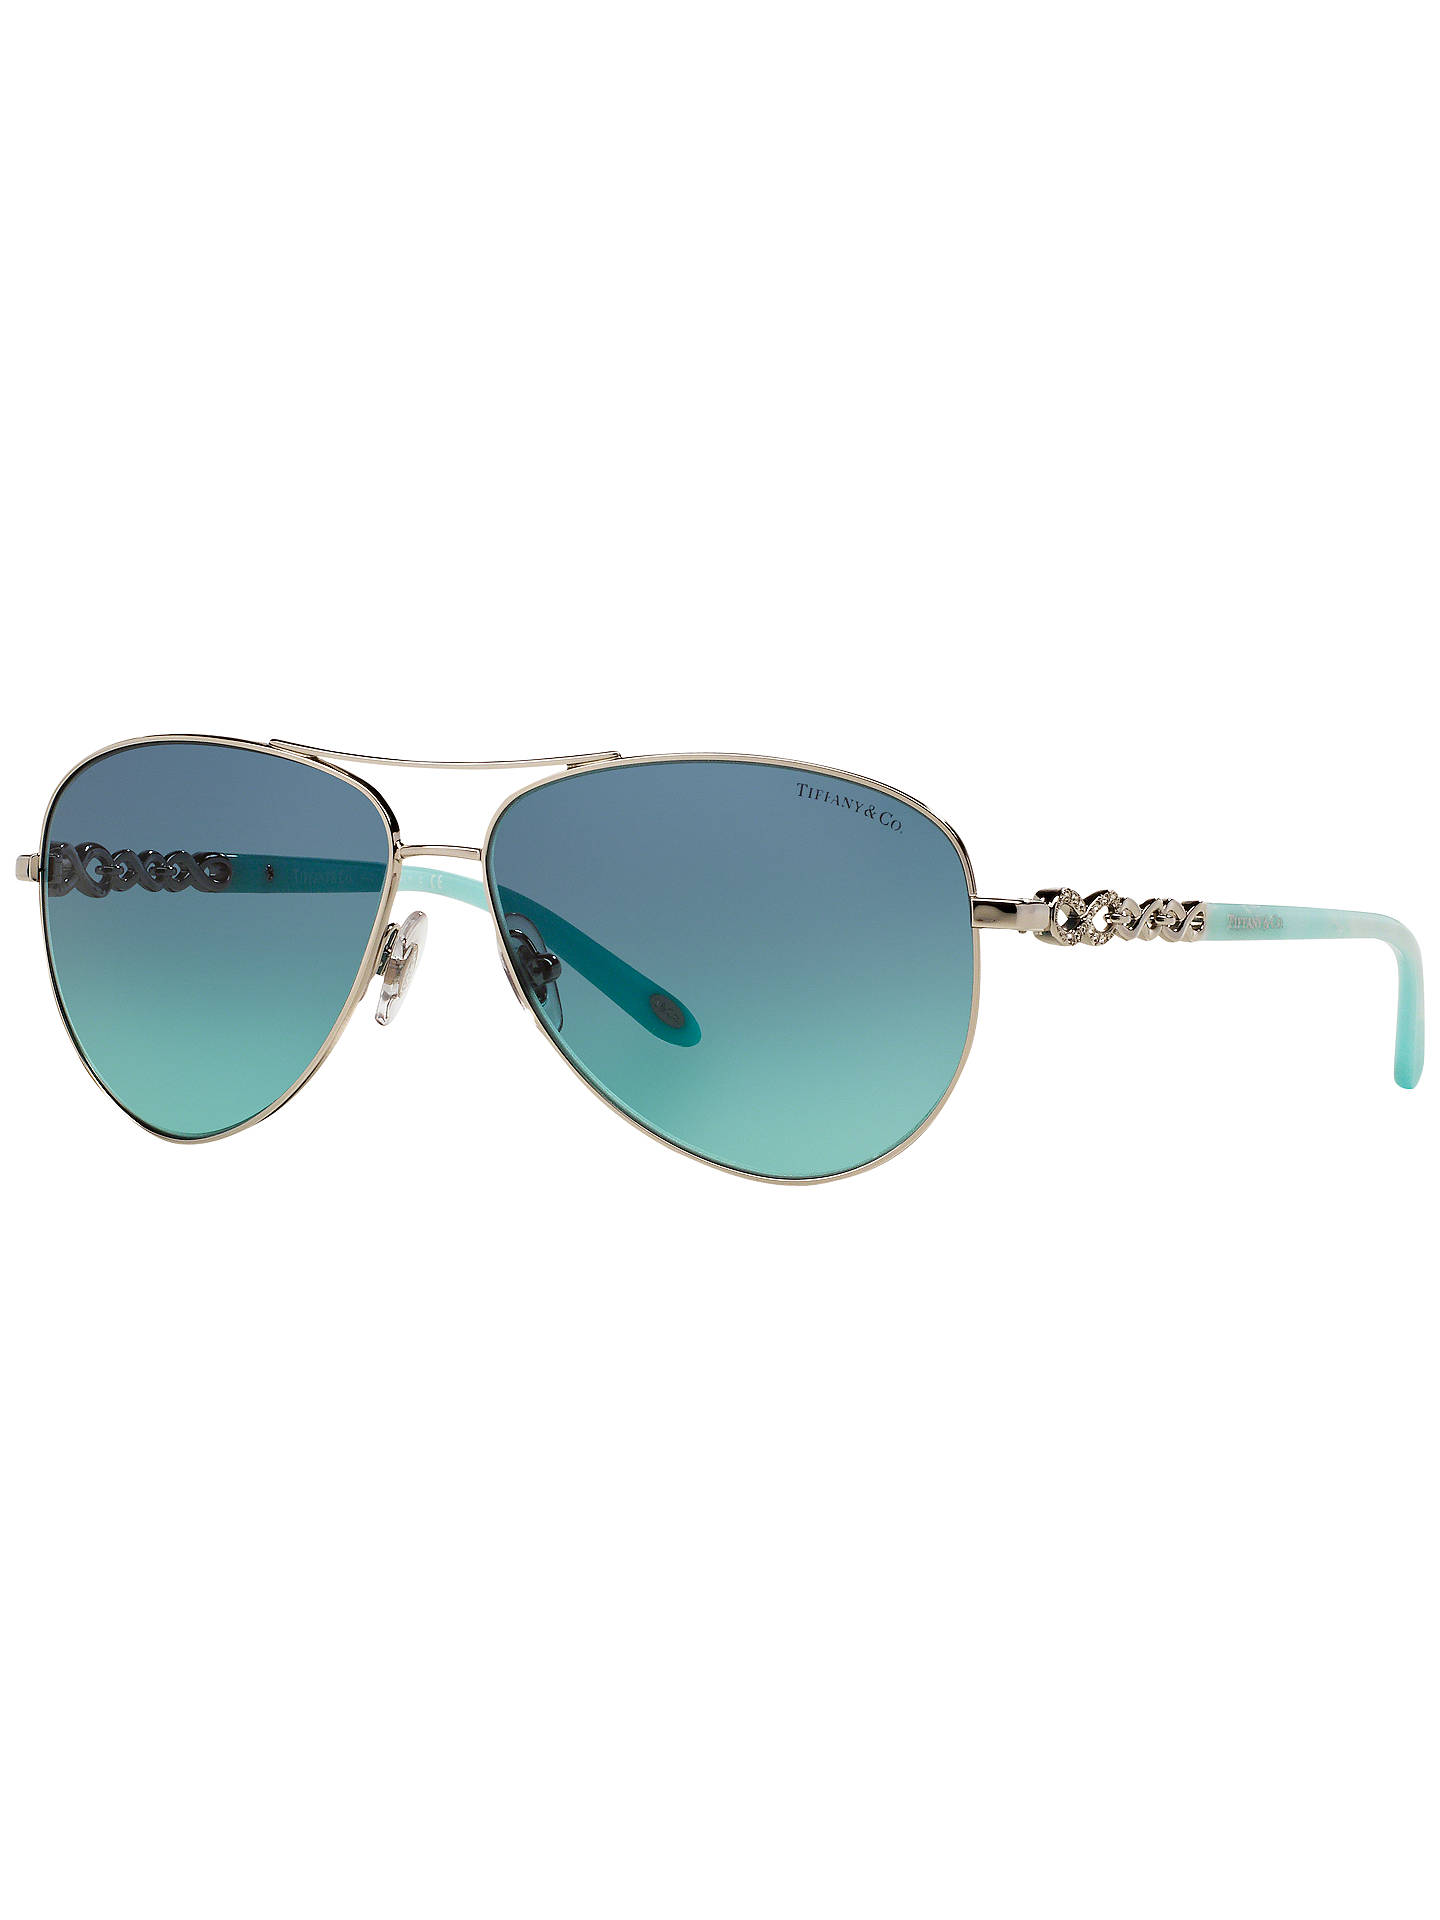 be41da3e395 Buy Tiffany   Co TF3049B Aviator Sunglasses